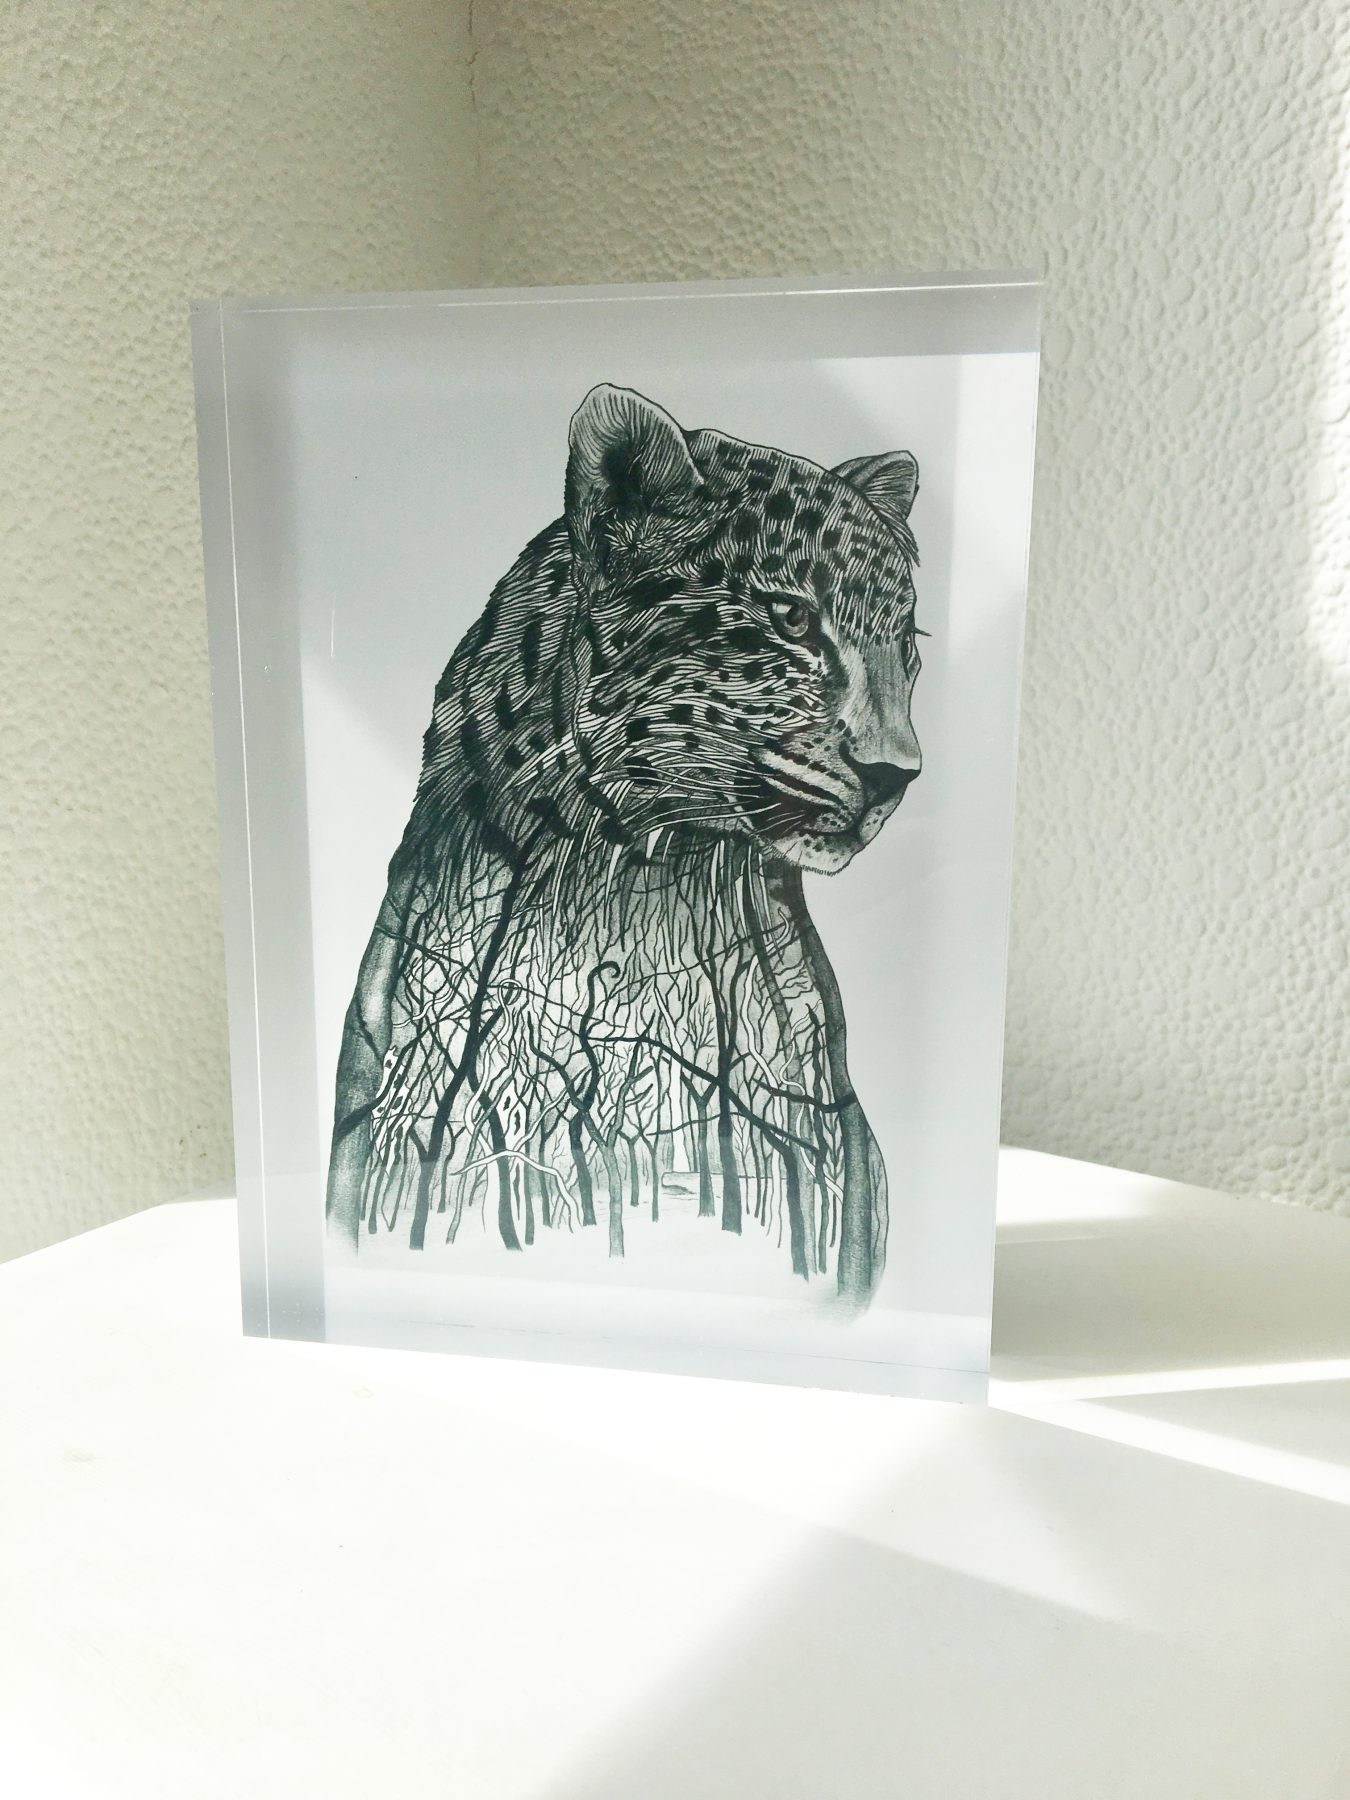 Amur Leopard on special edition acrylic glass block